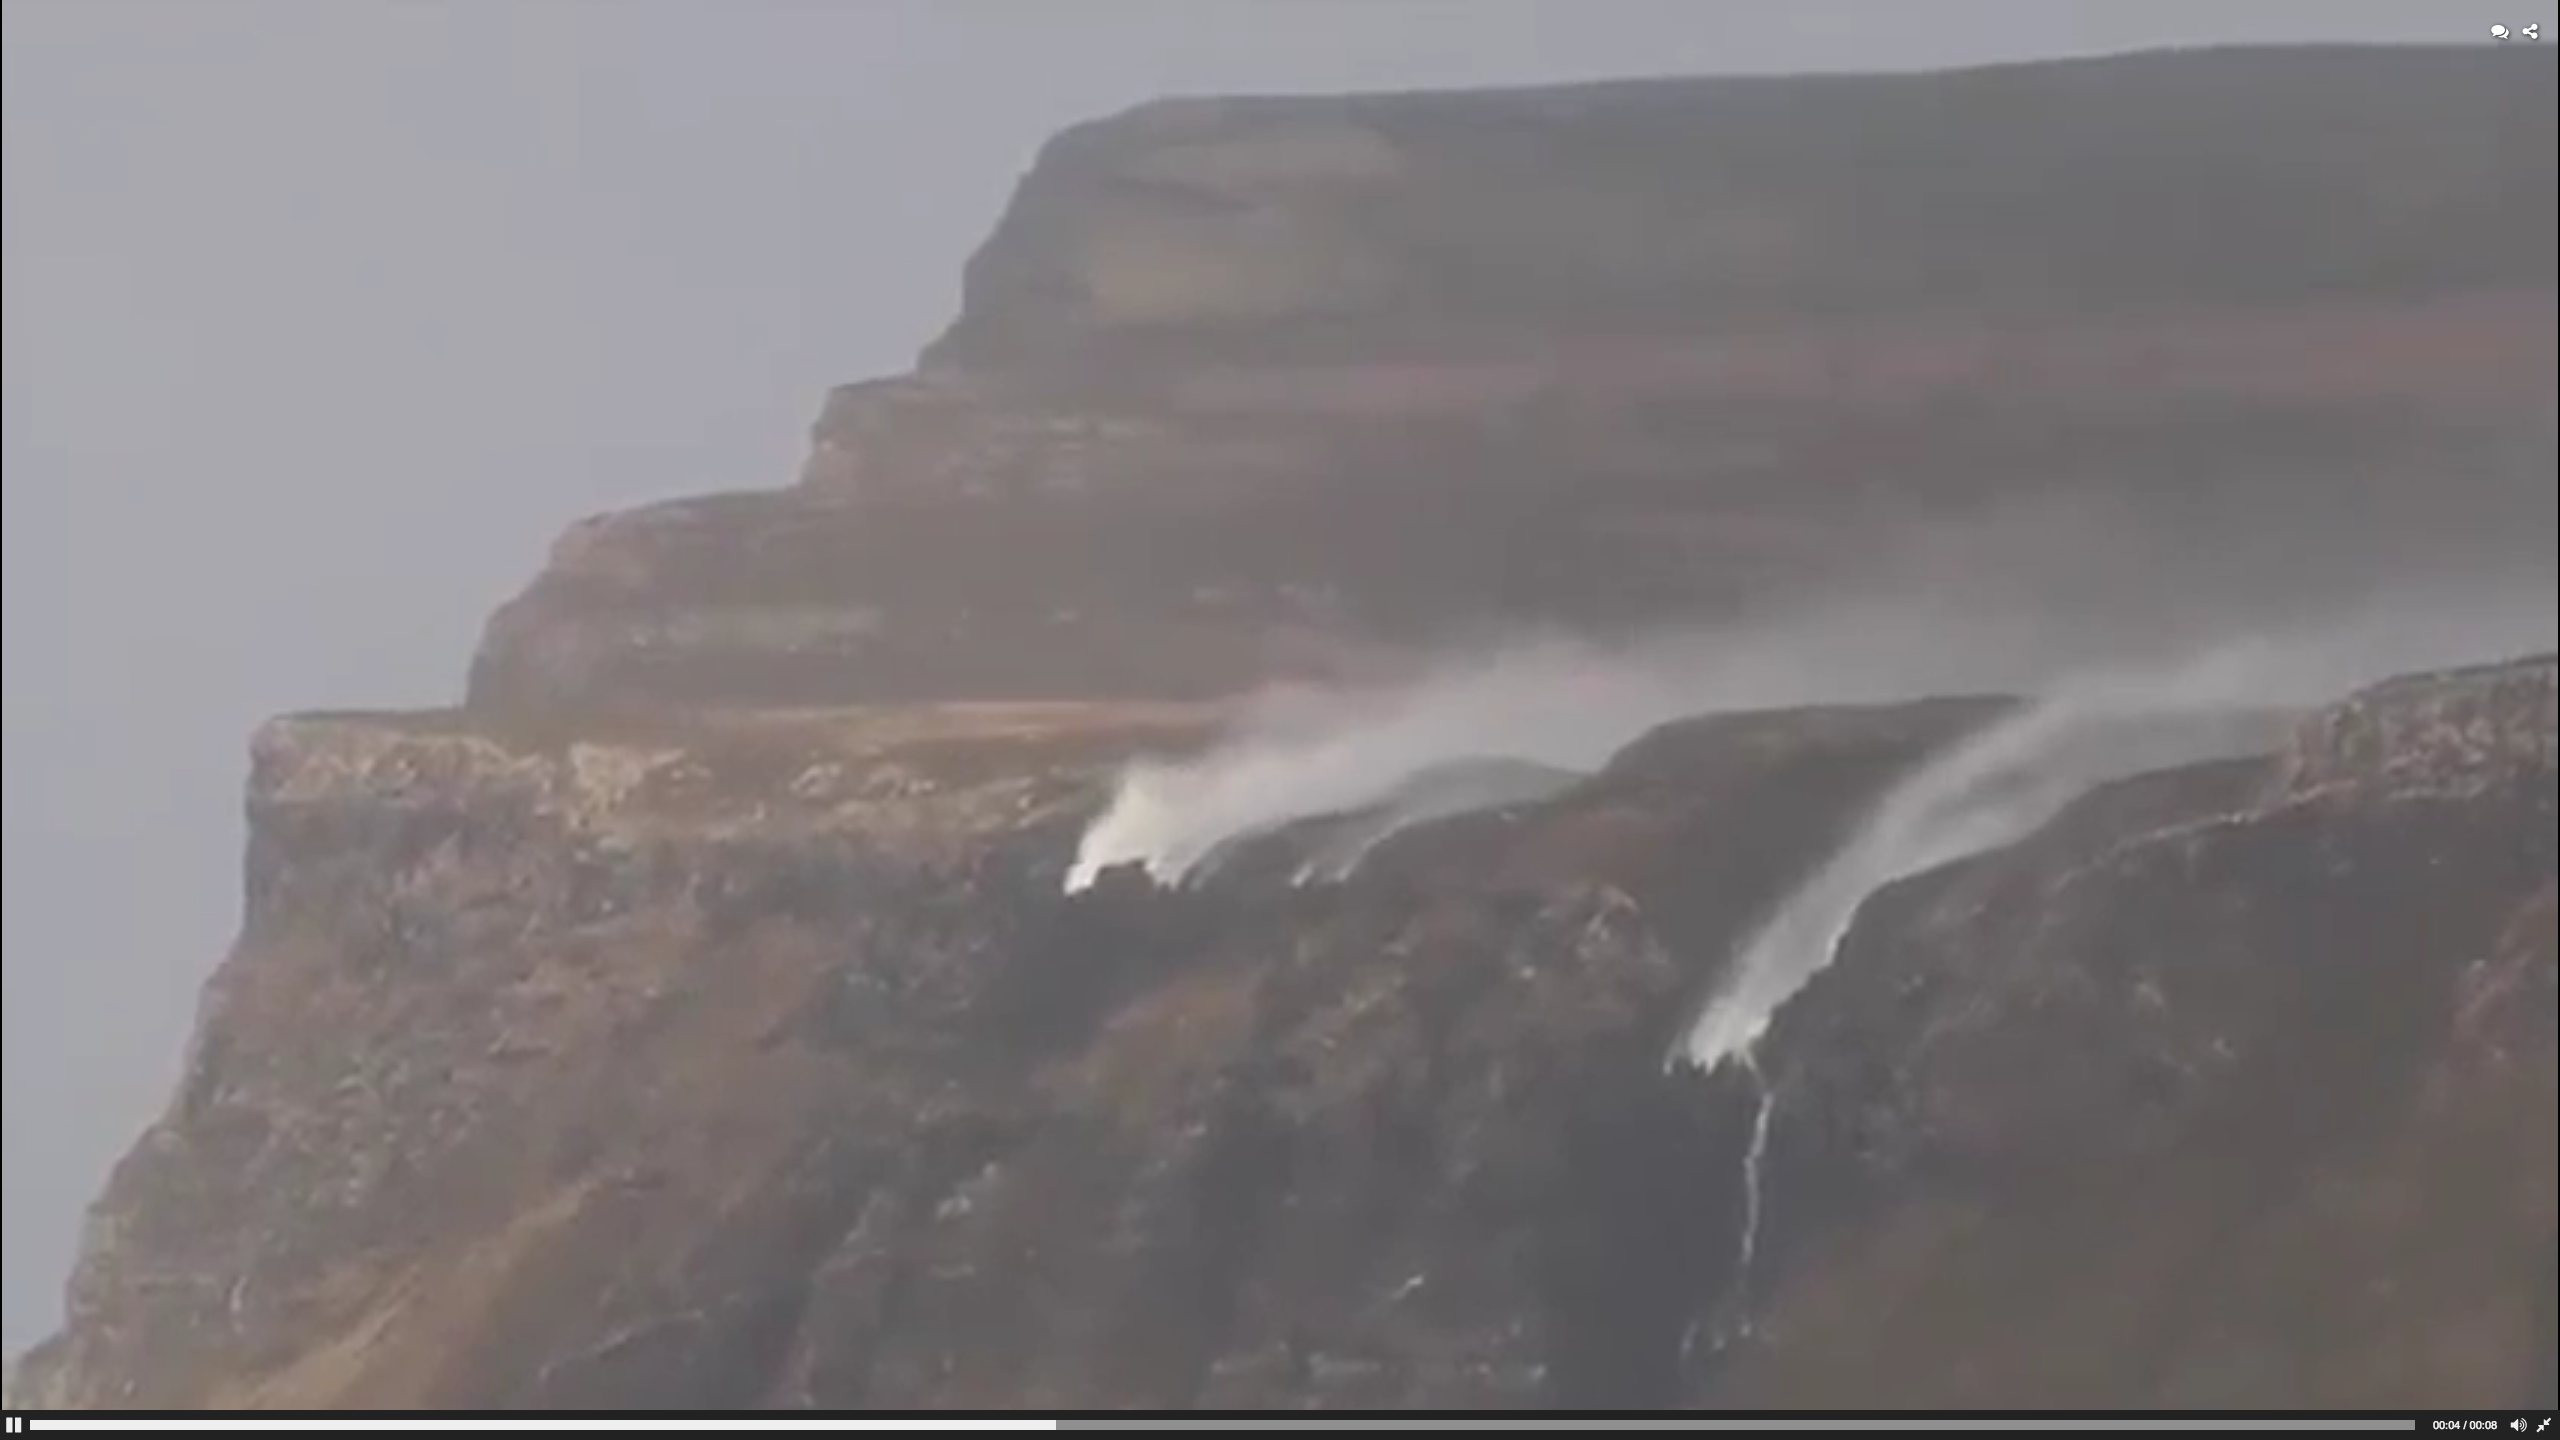 Mull waterfalls being blown backwards by high winds